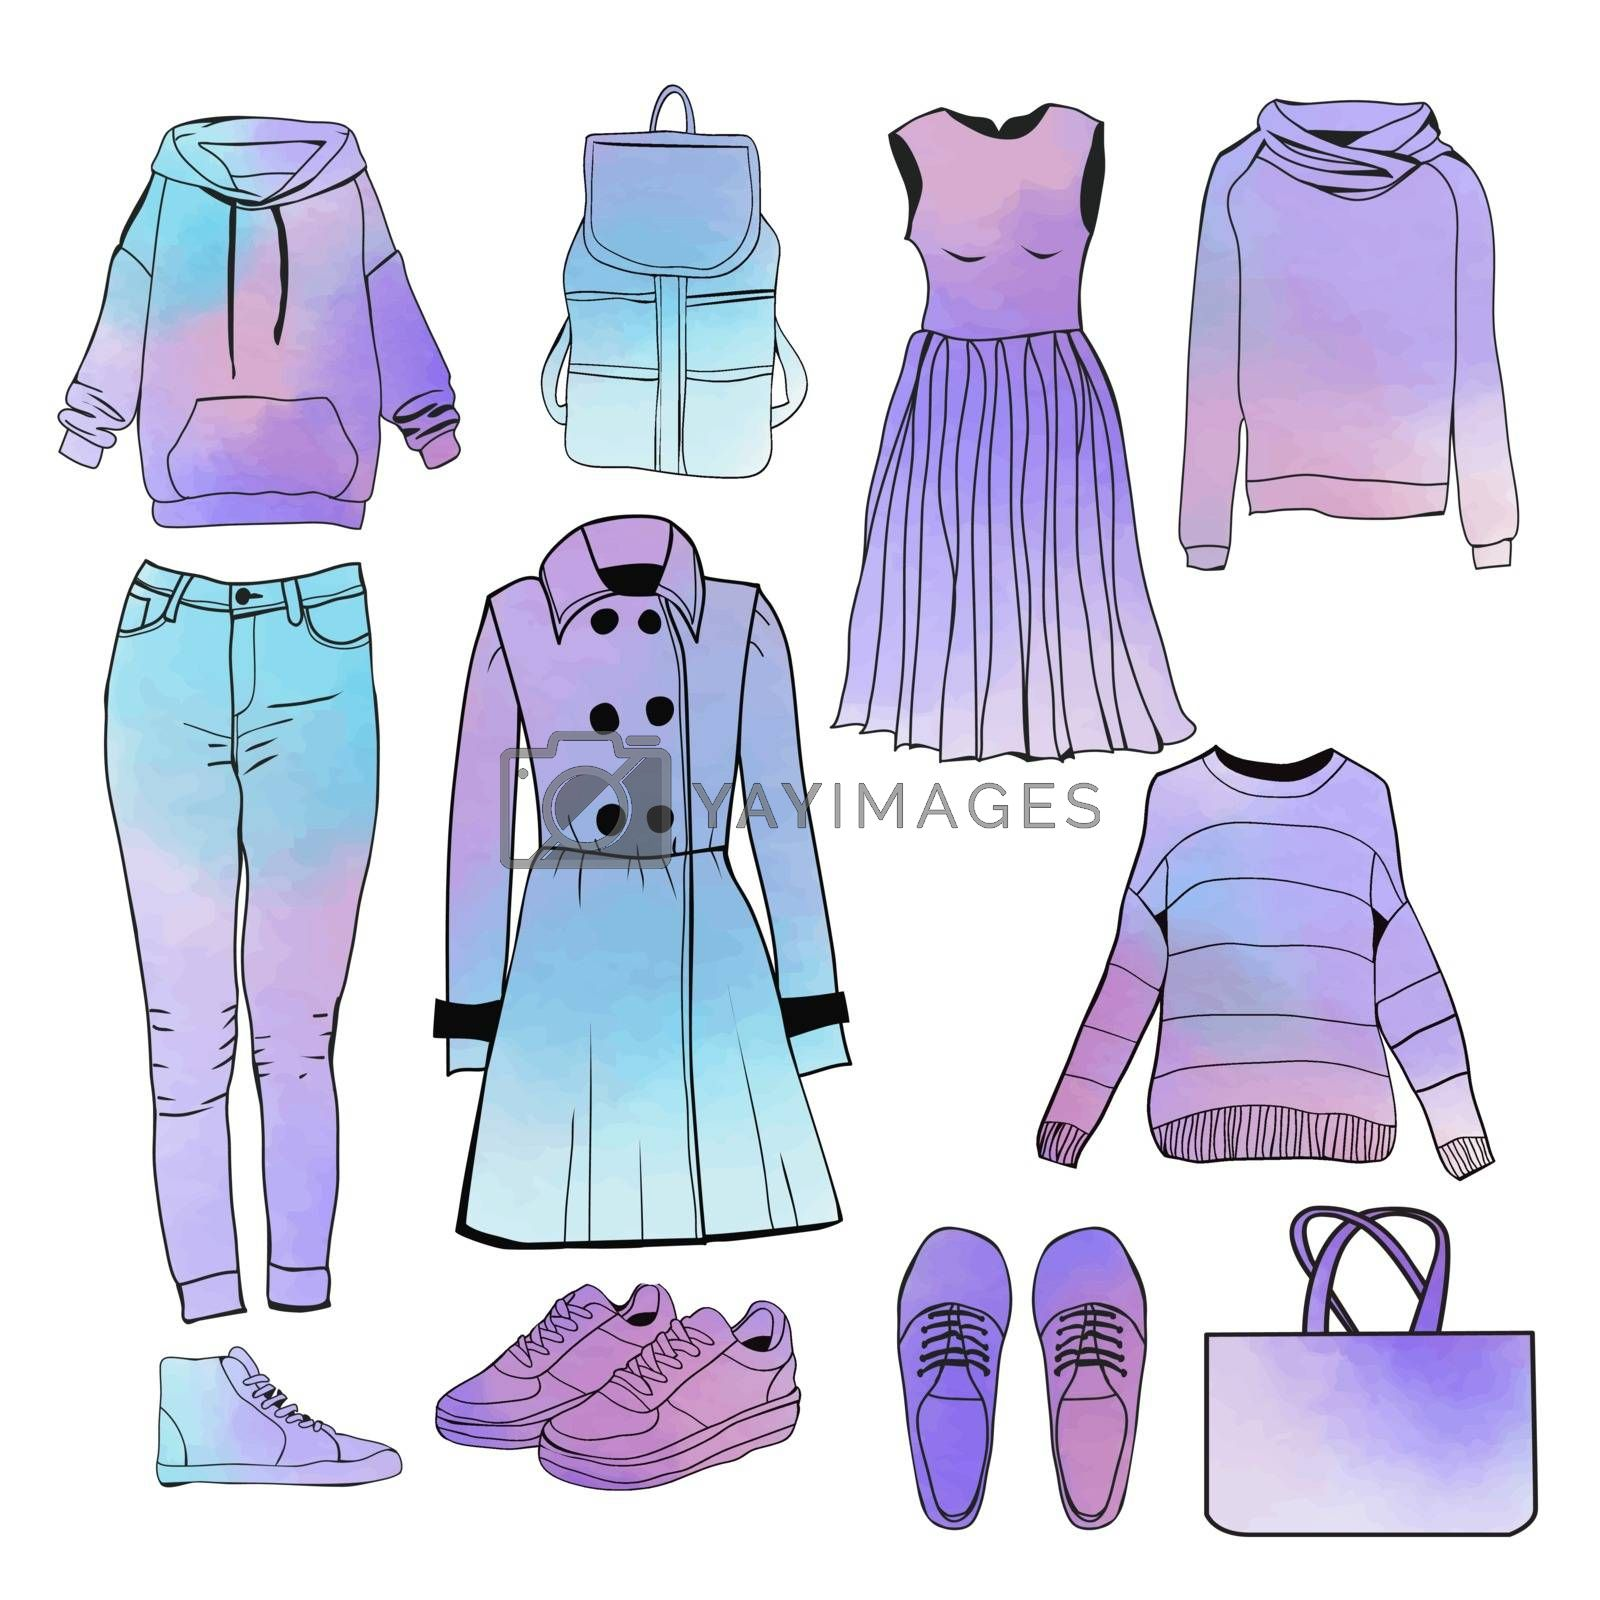 A set of of fashionable clothing and accessories spring and autumn season collection. Hand drawn watercolor womens Spring collection fashion clothes. Outfit of casual elegant woman style.